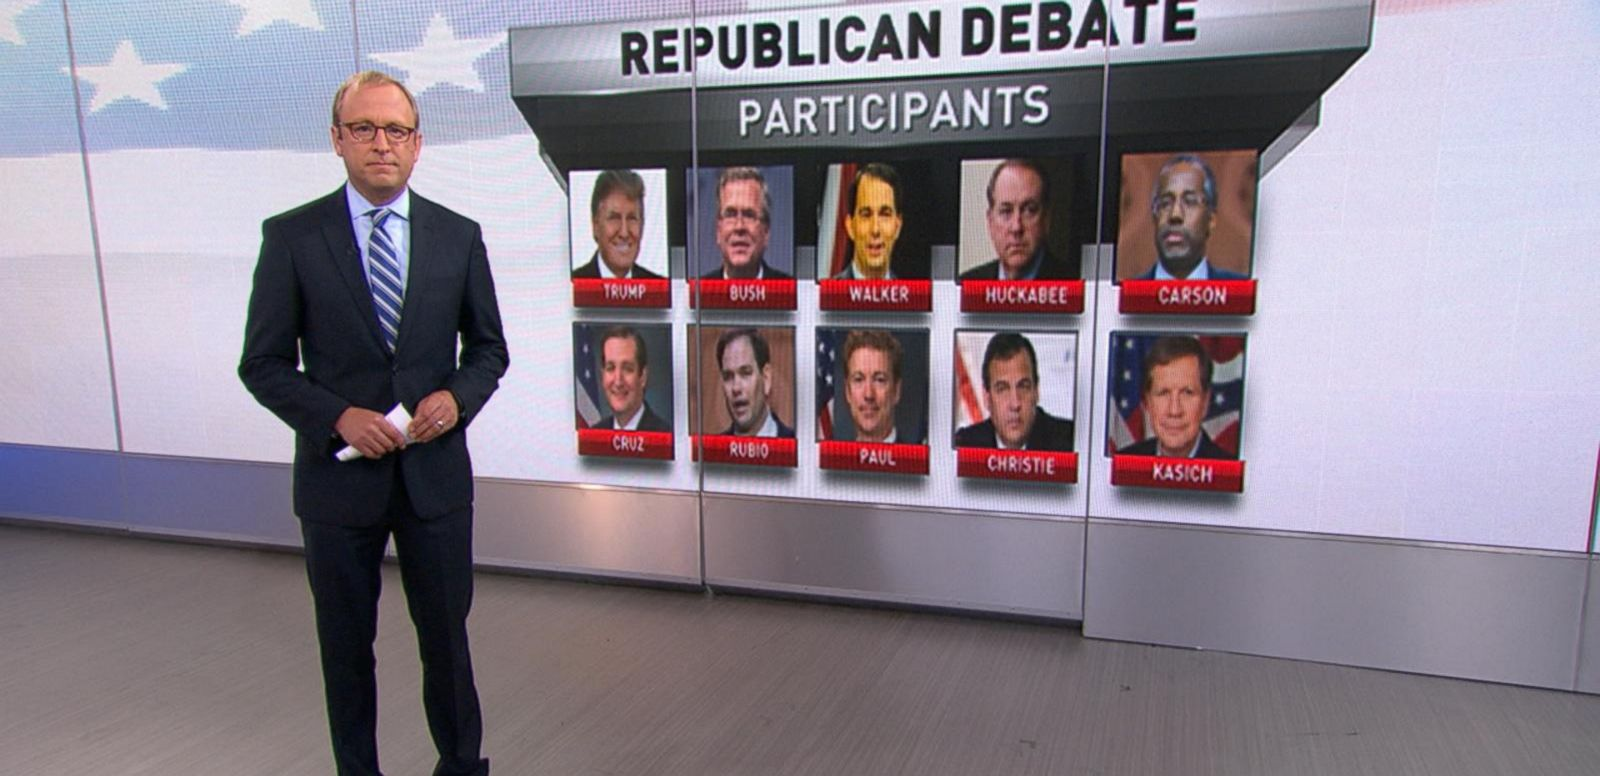 VIDEO: The 1st GOP Presidential Debate: Who's in, Who's Out